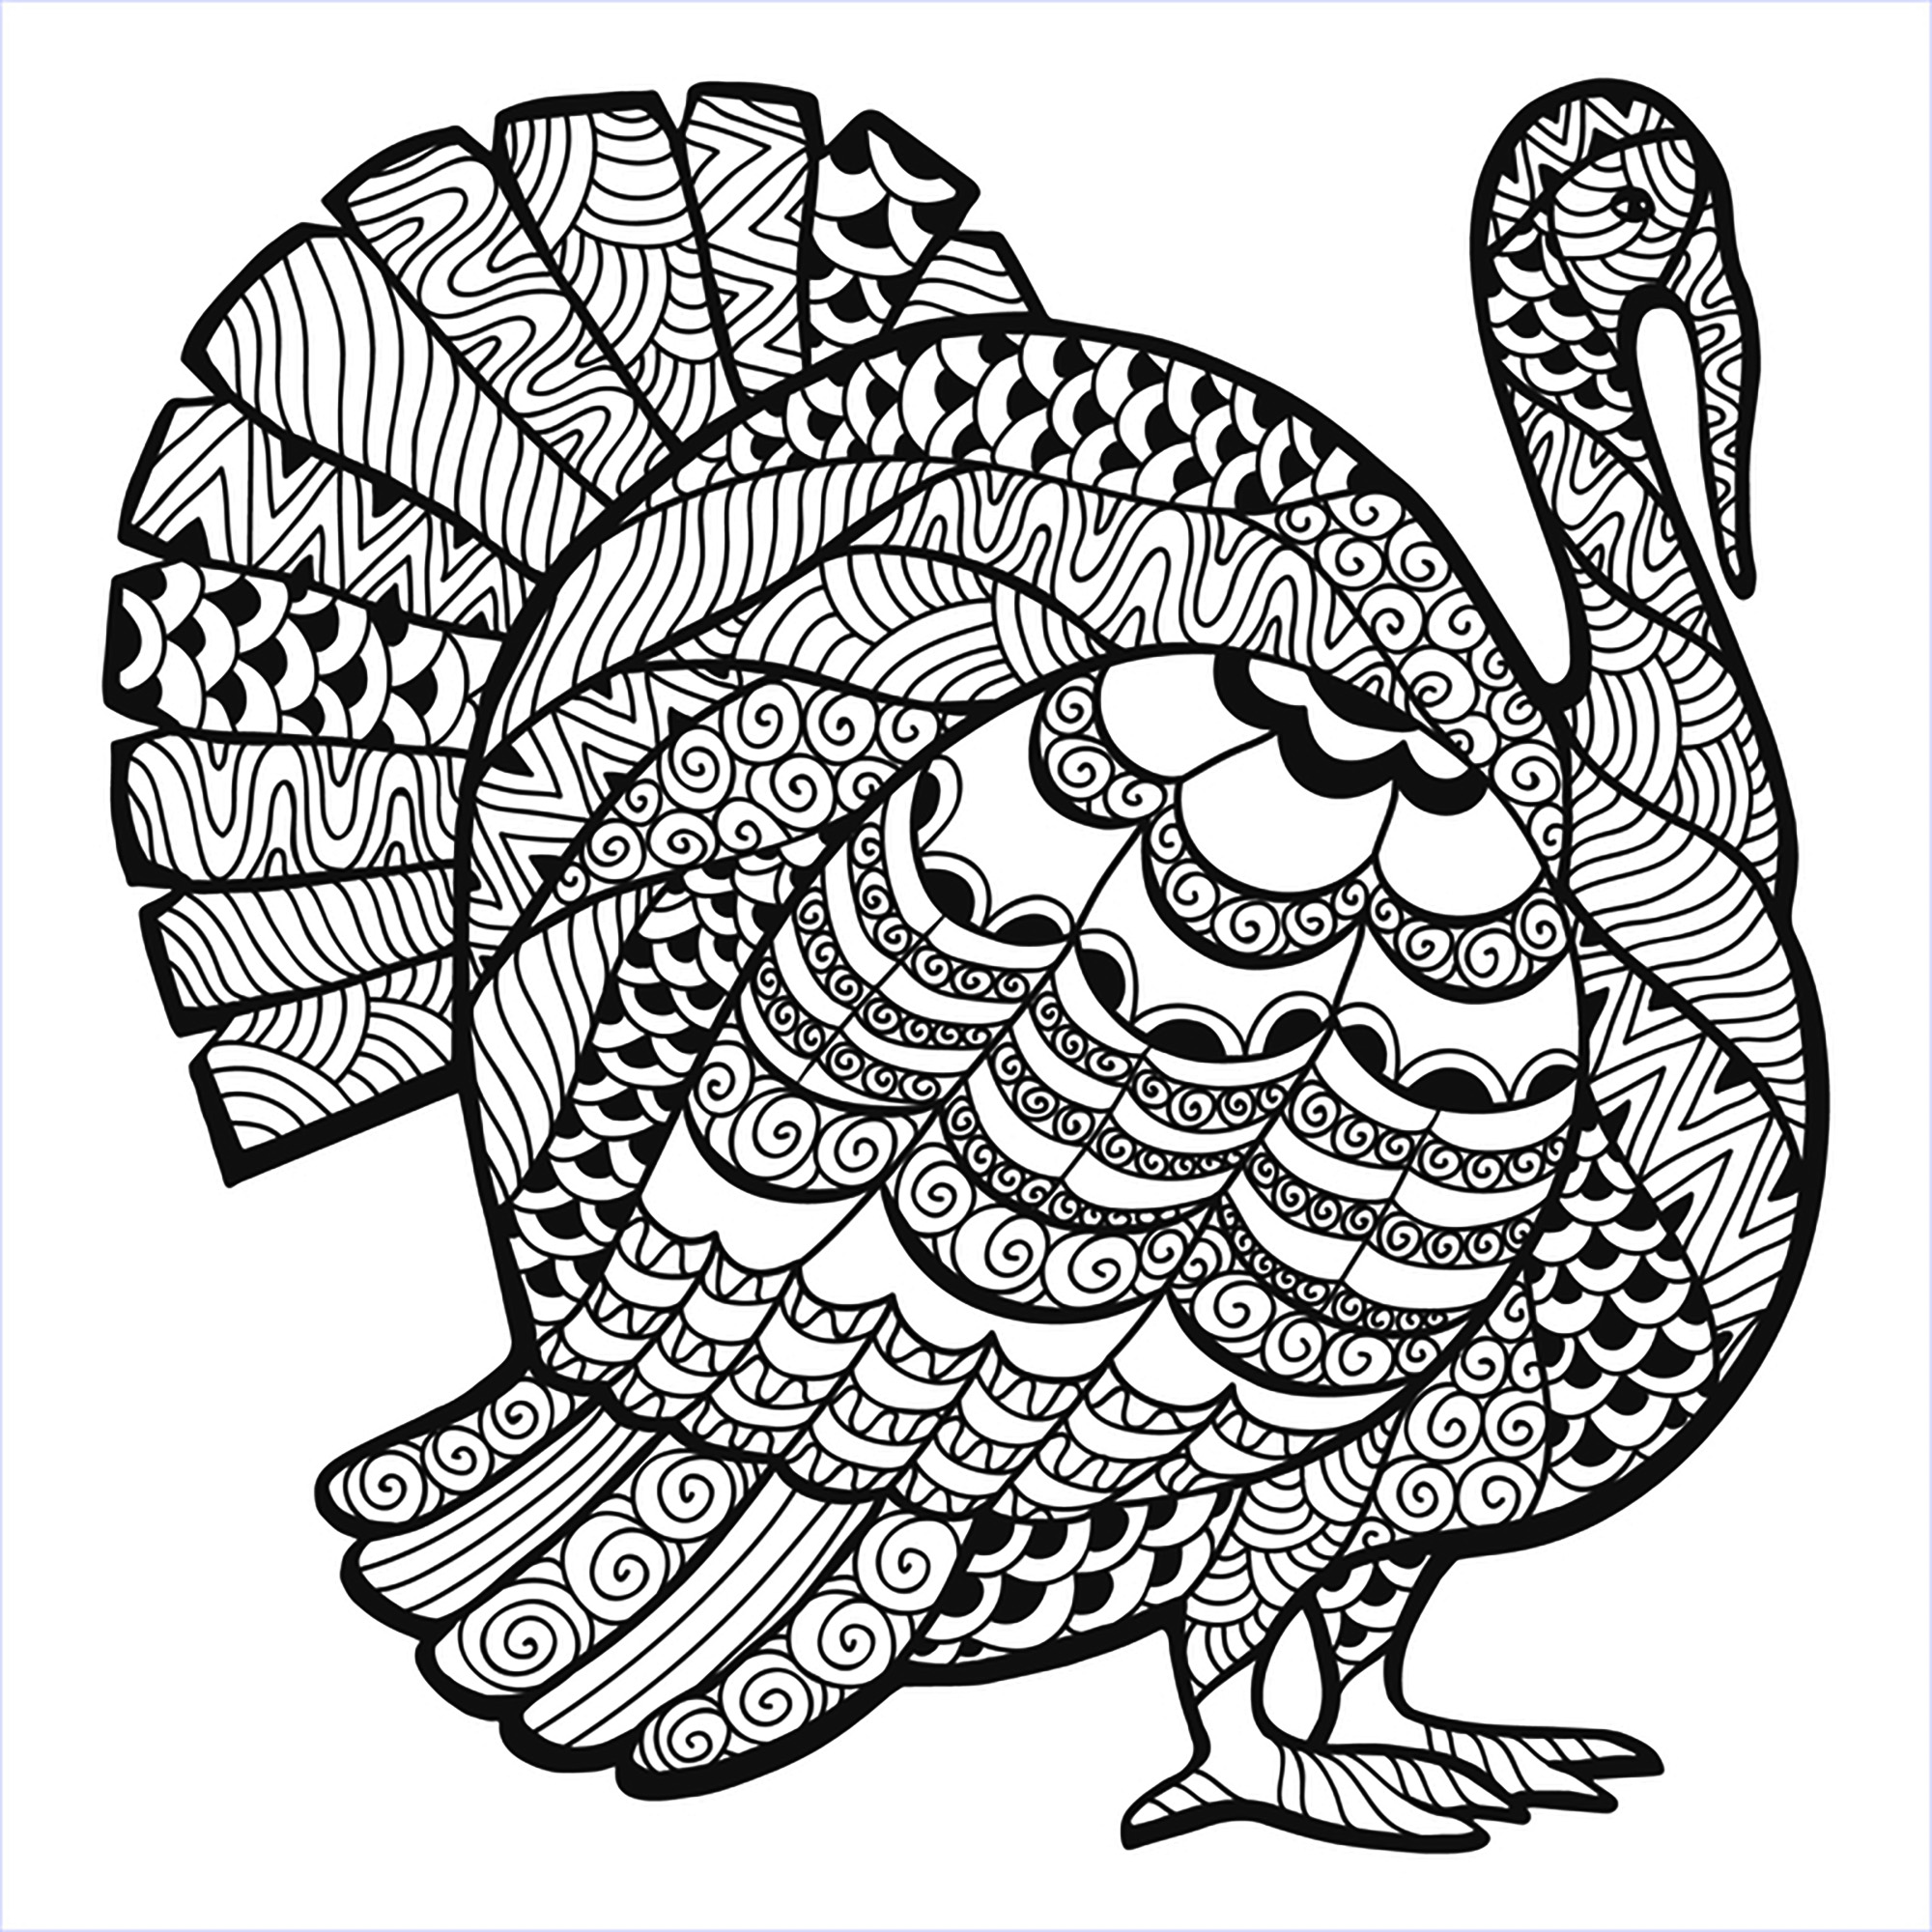 2000x2000 Turkey Zentangle Coloring Sheet